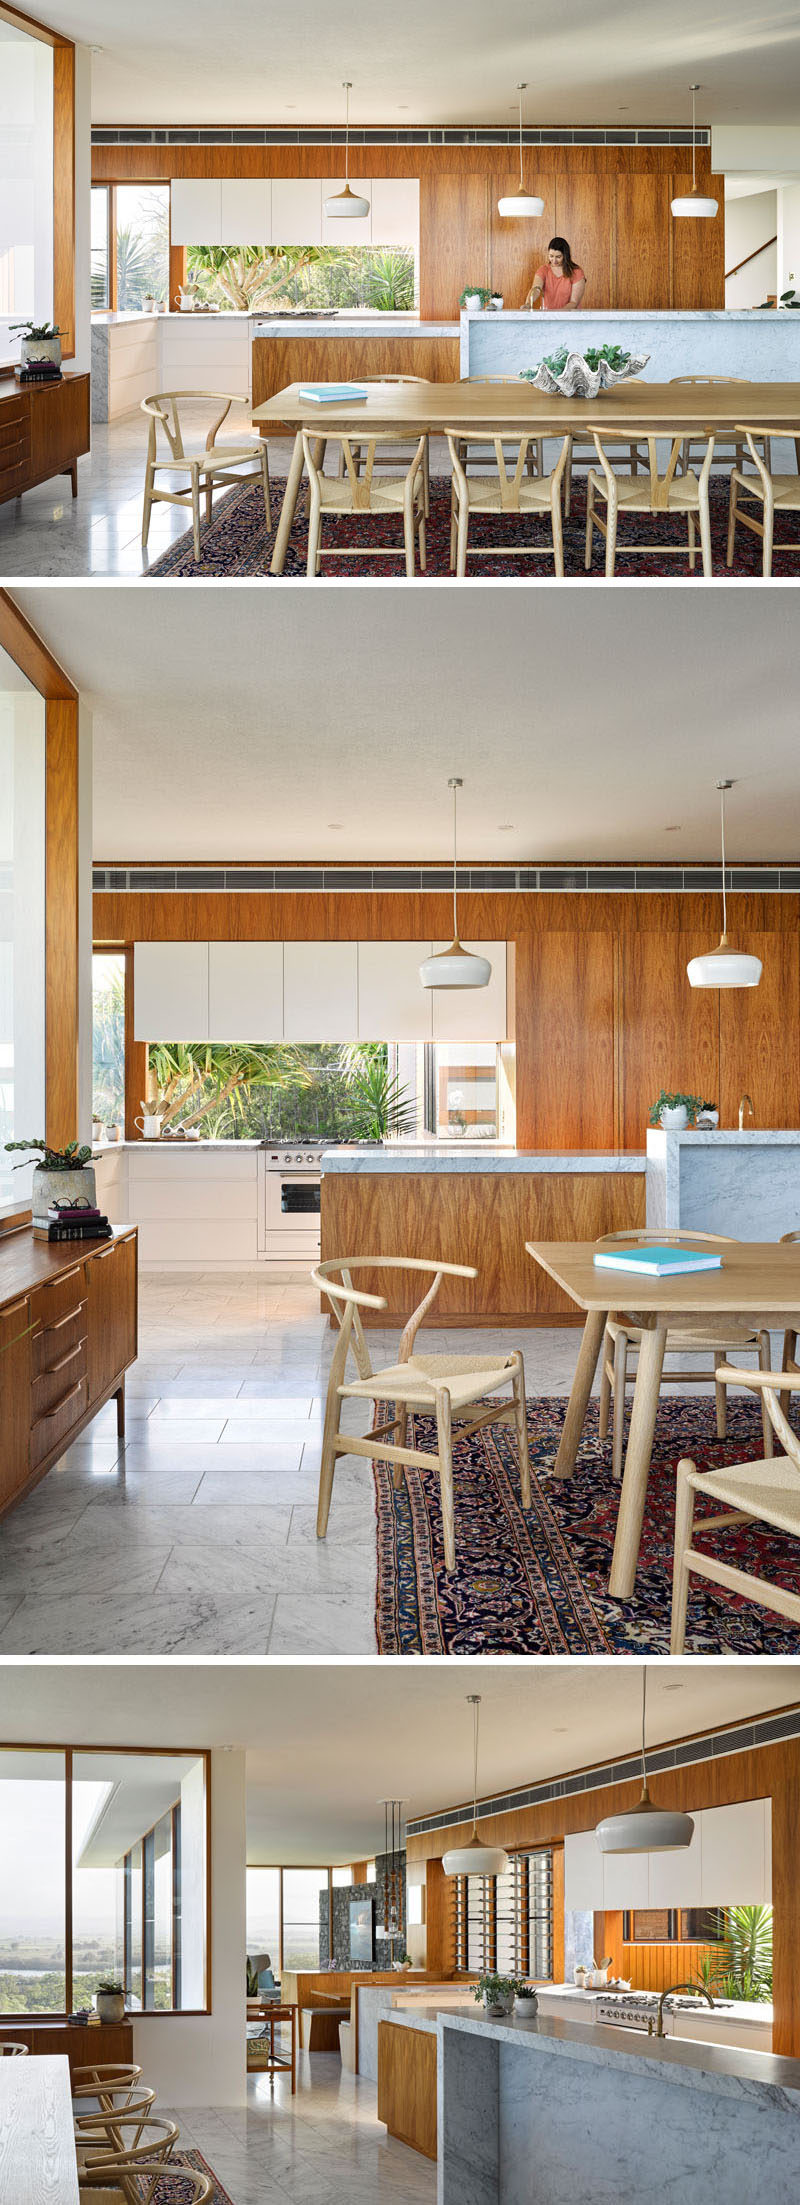 This modern house features a kitchen with wood cabinets and marble countertops.